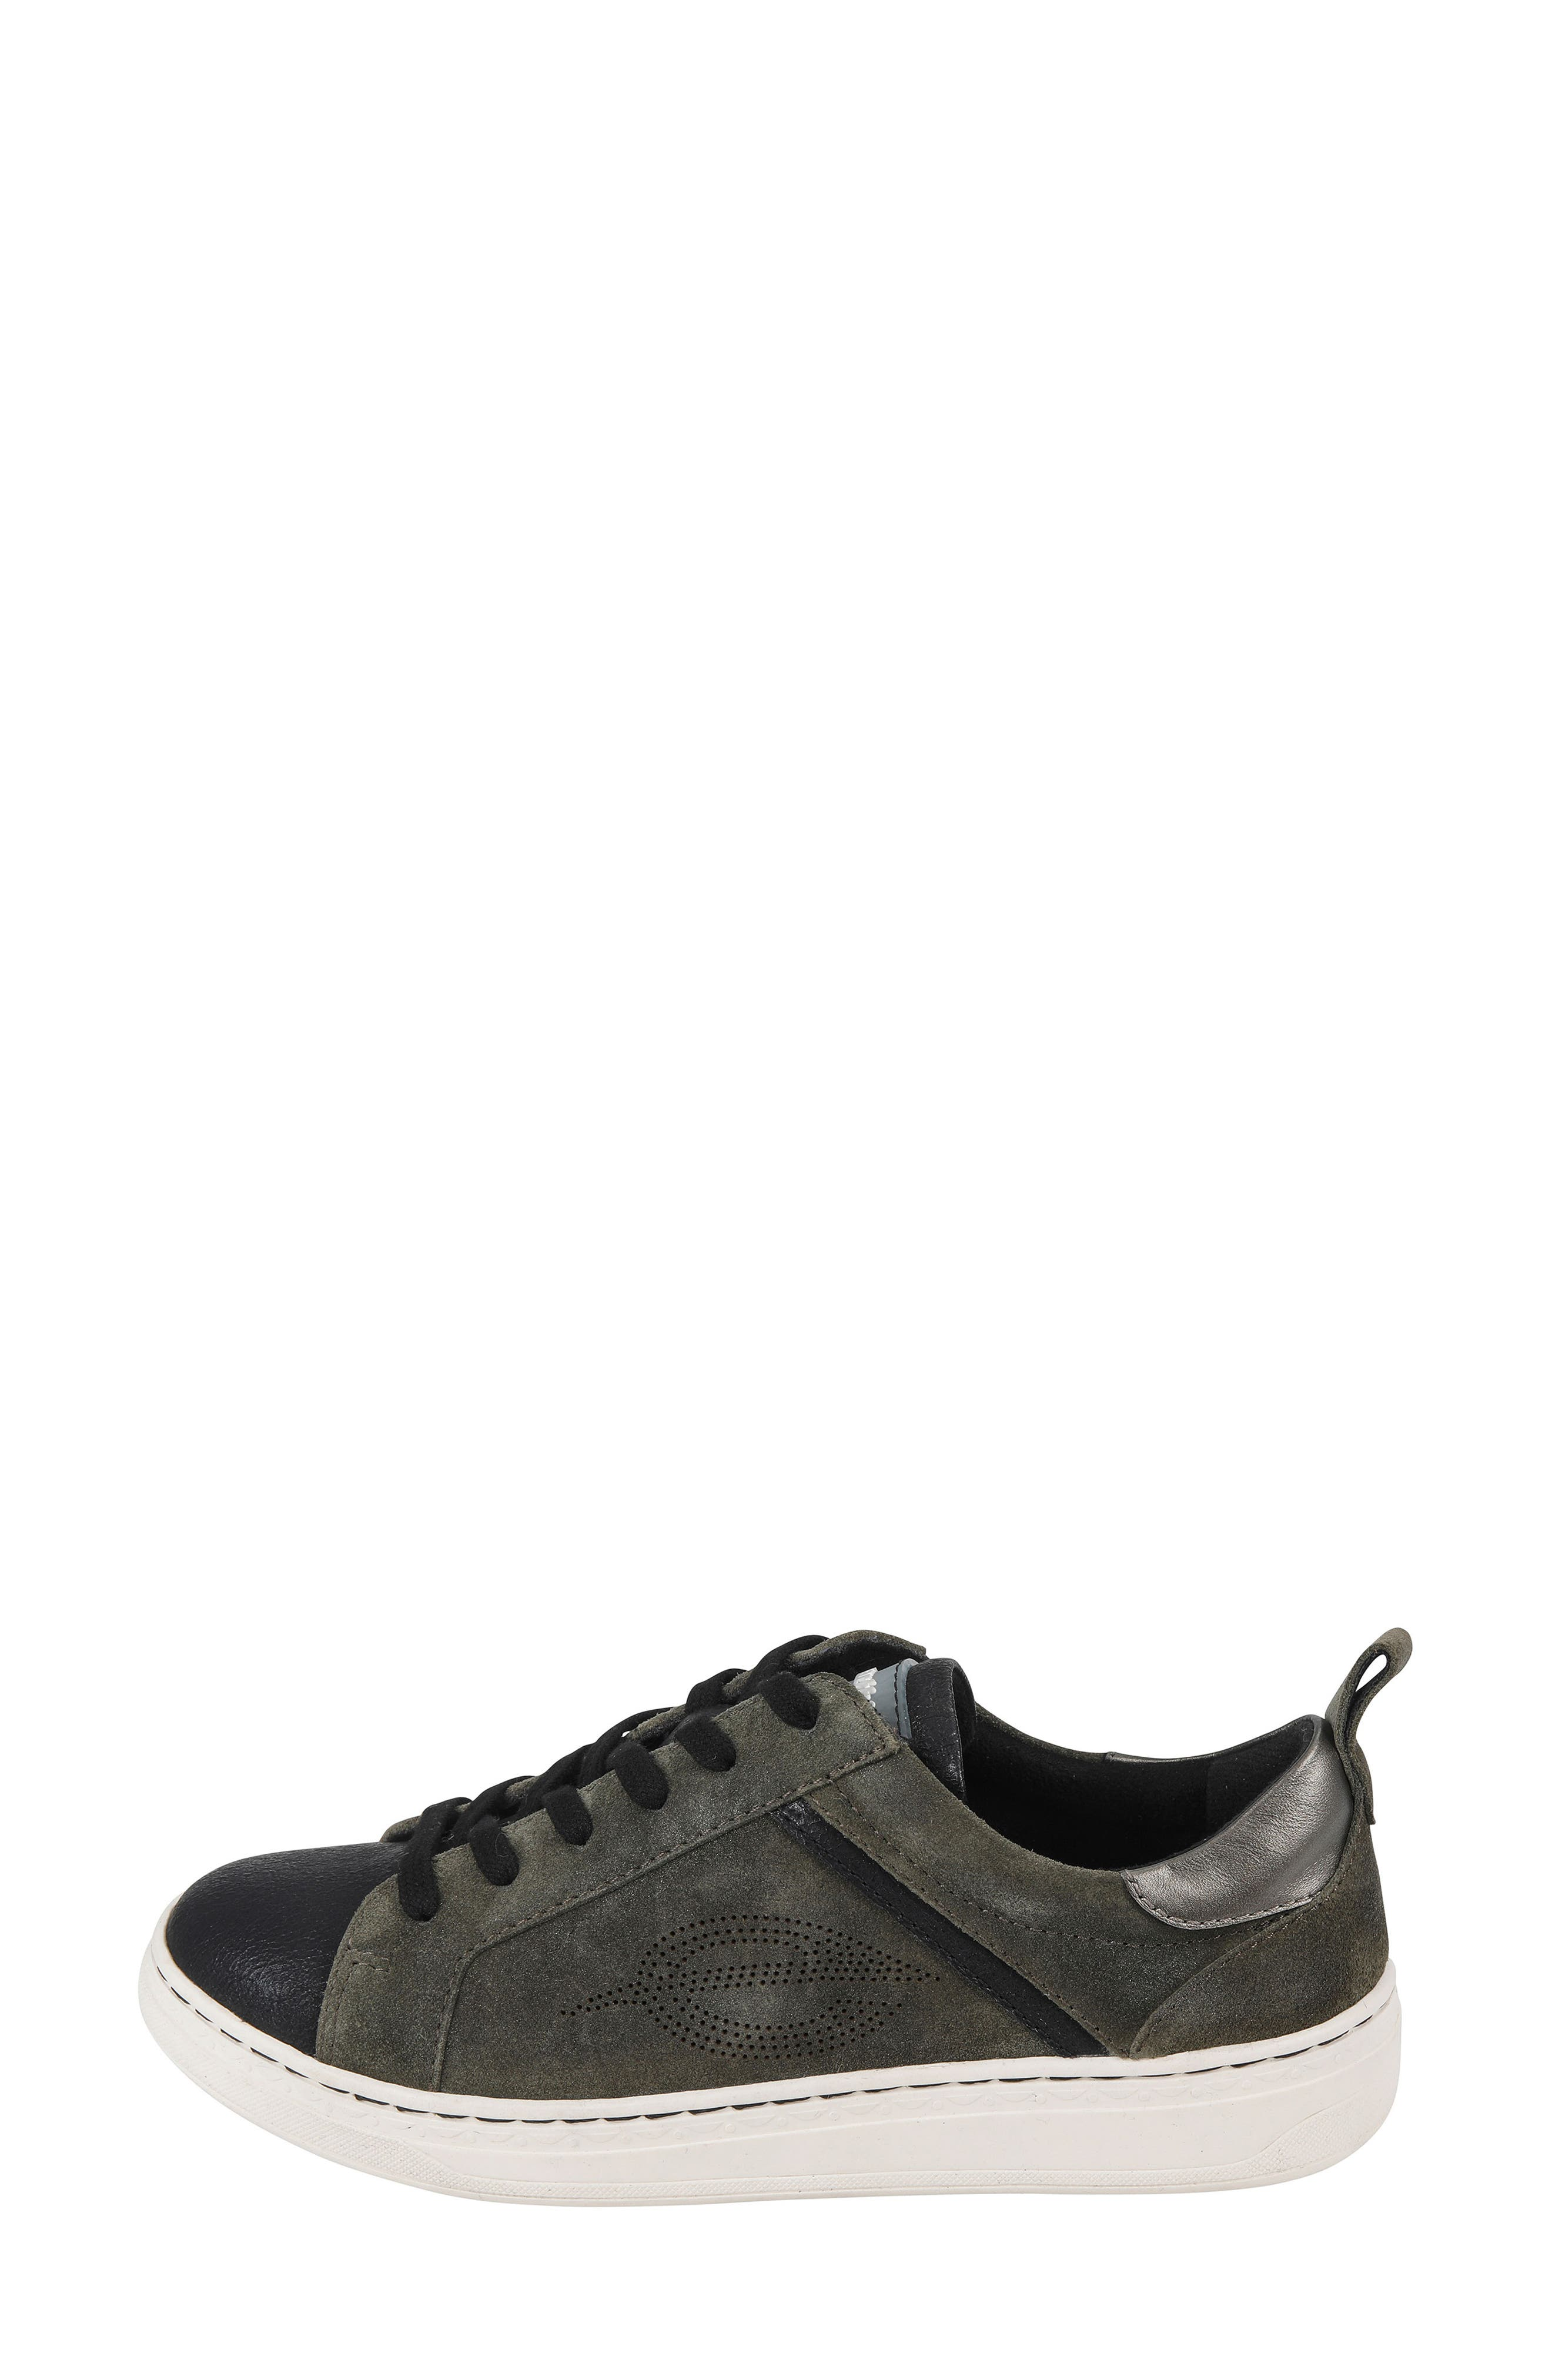 Zinnia Low Top Sneaker,                             Alternate thumbnail 3, color,                             BLACK METALLIC FAUX LEATHER